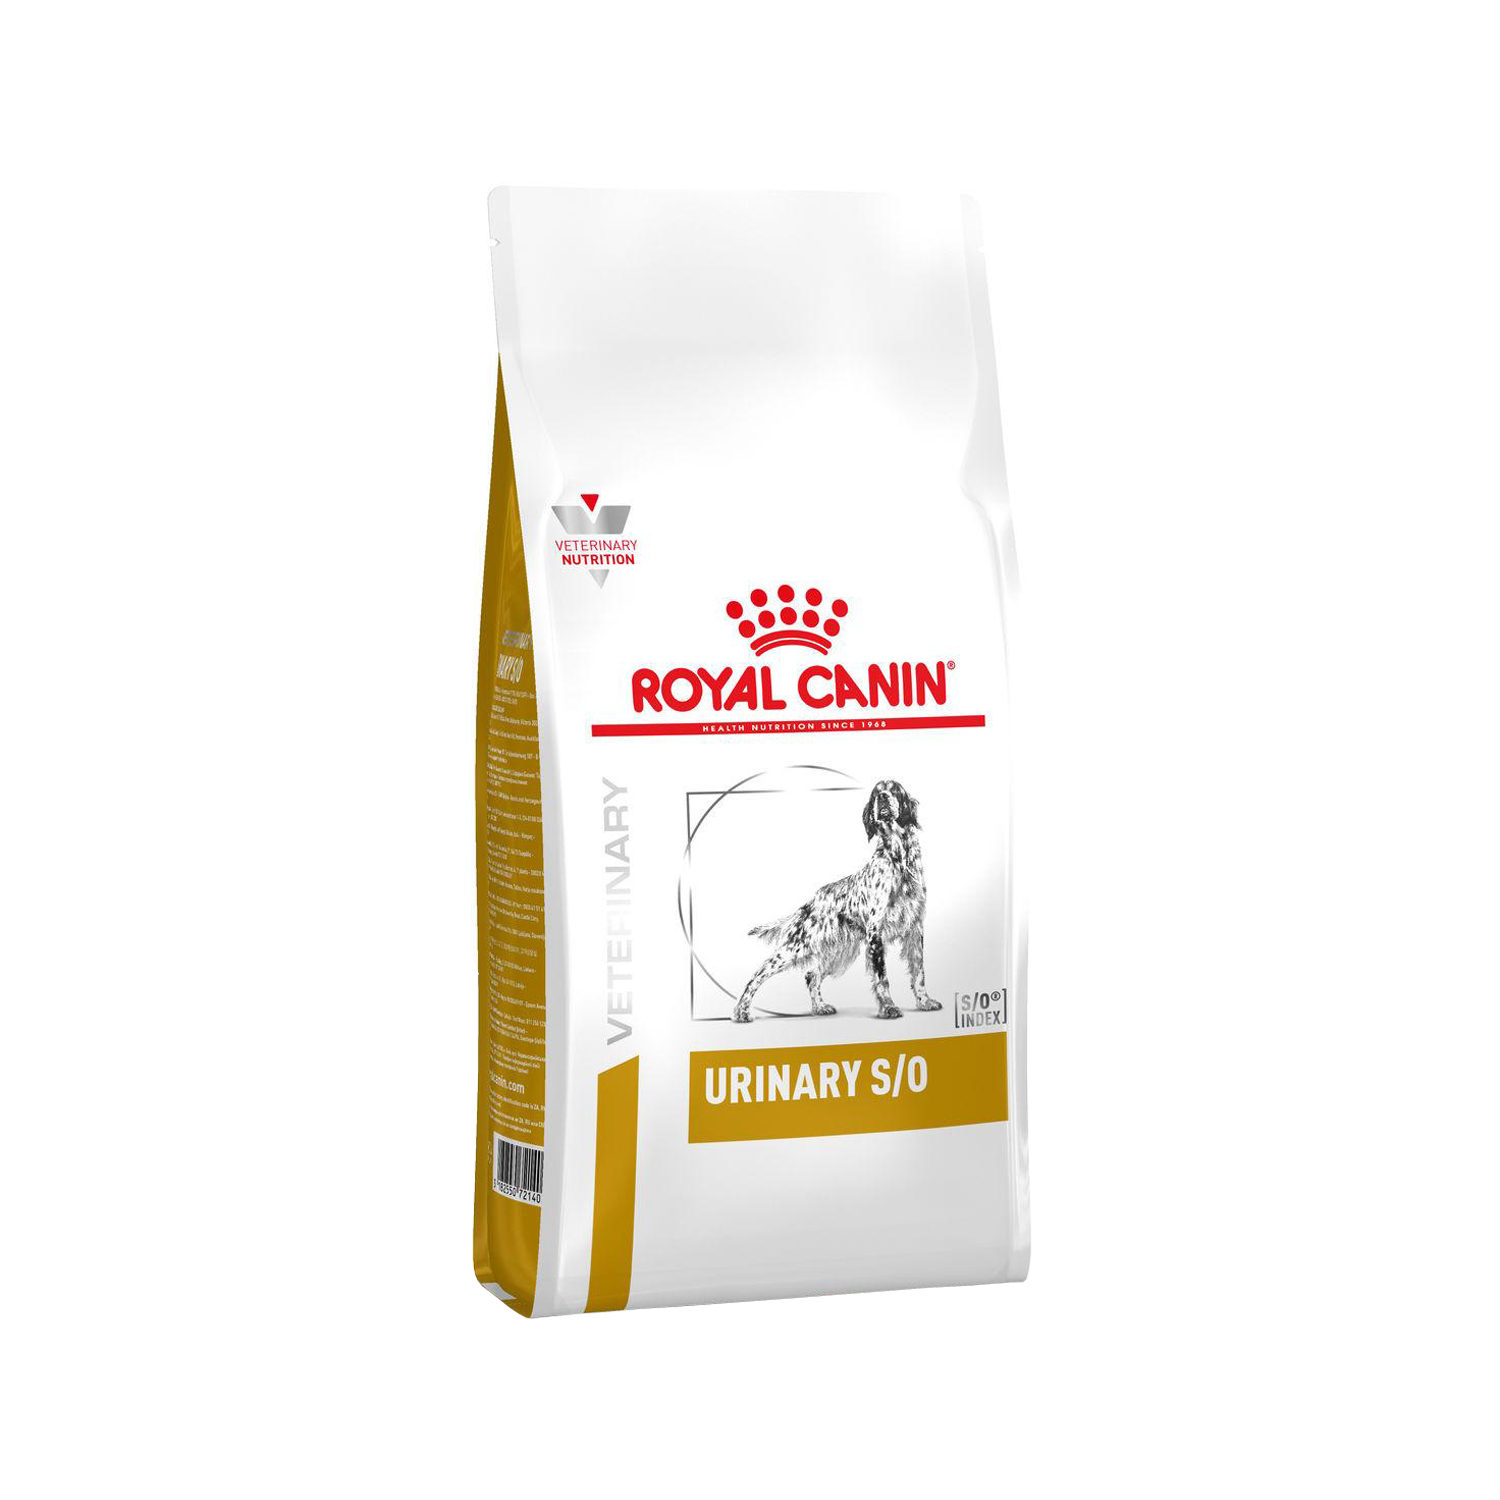 Royal Canin Urinary S/O (LP 18) Hundefutter